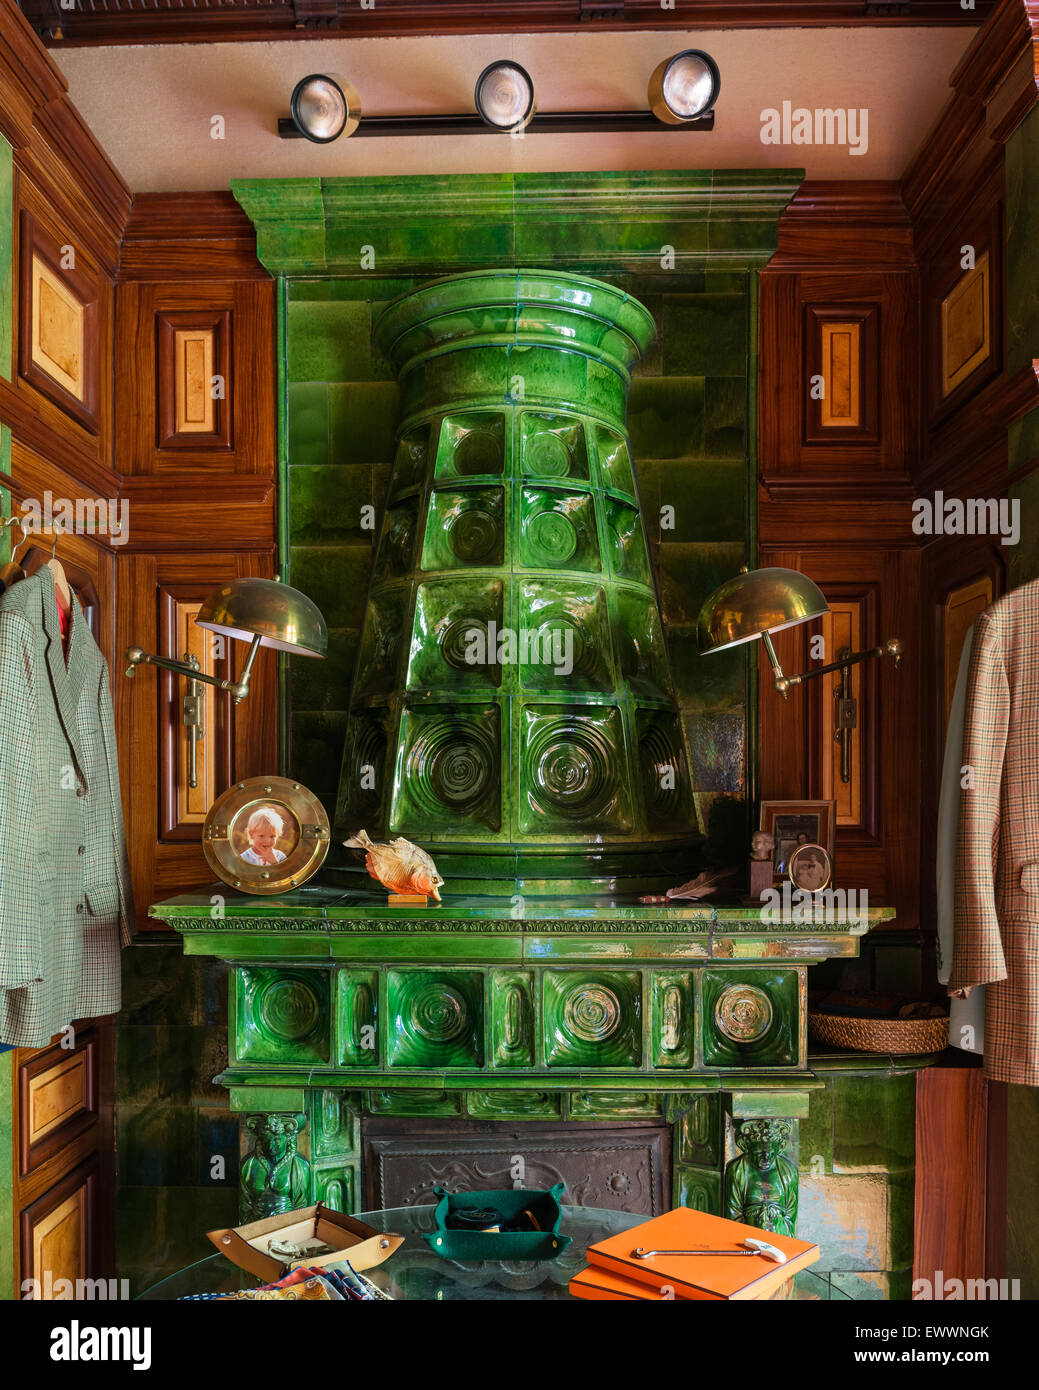 Green tiled stove in study with wood panelled walls and brass wall lights - Stock Image